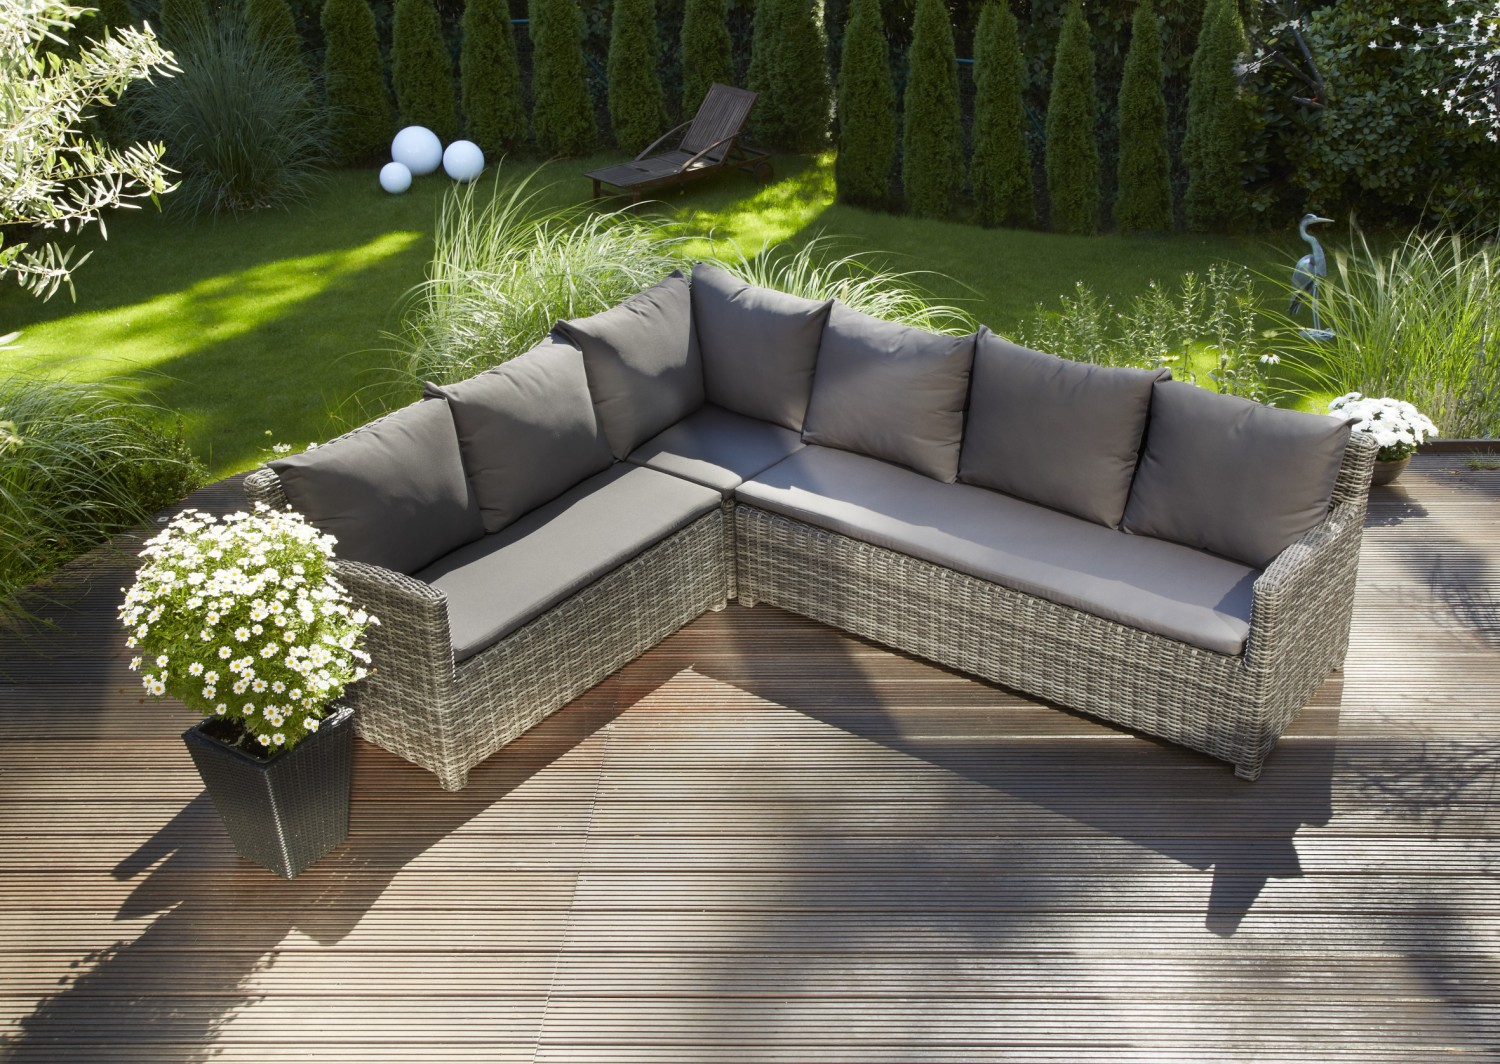 Greemotion gartenm bel loungset miami loungegarnitur bild for Greemotion gartenmobel